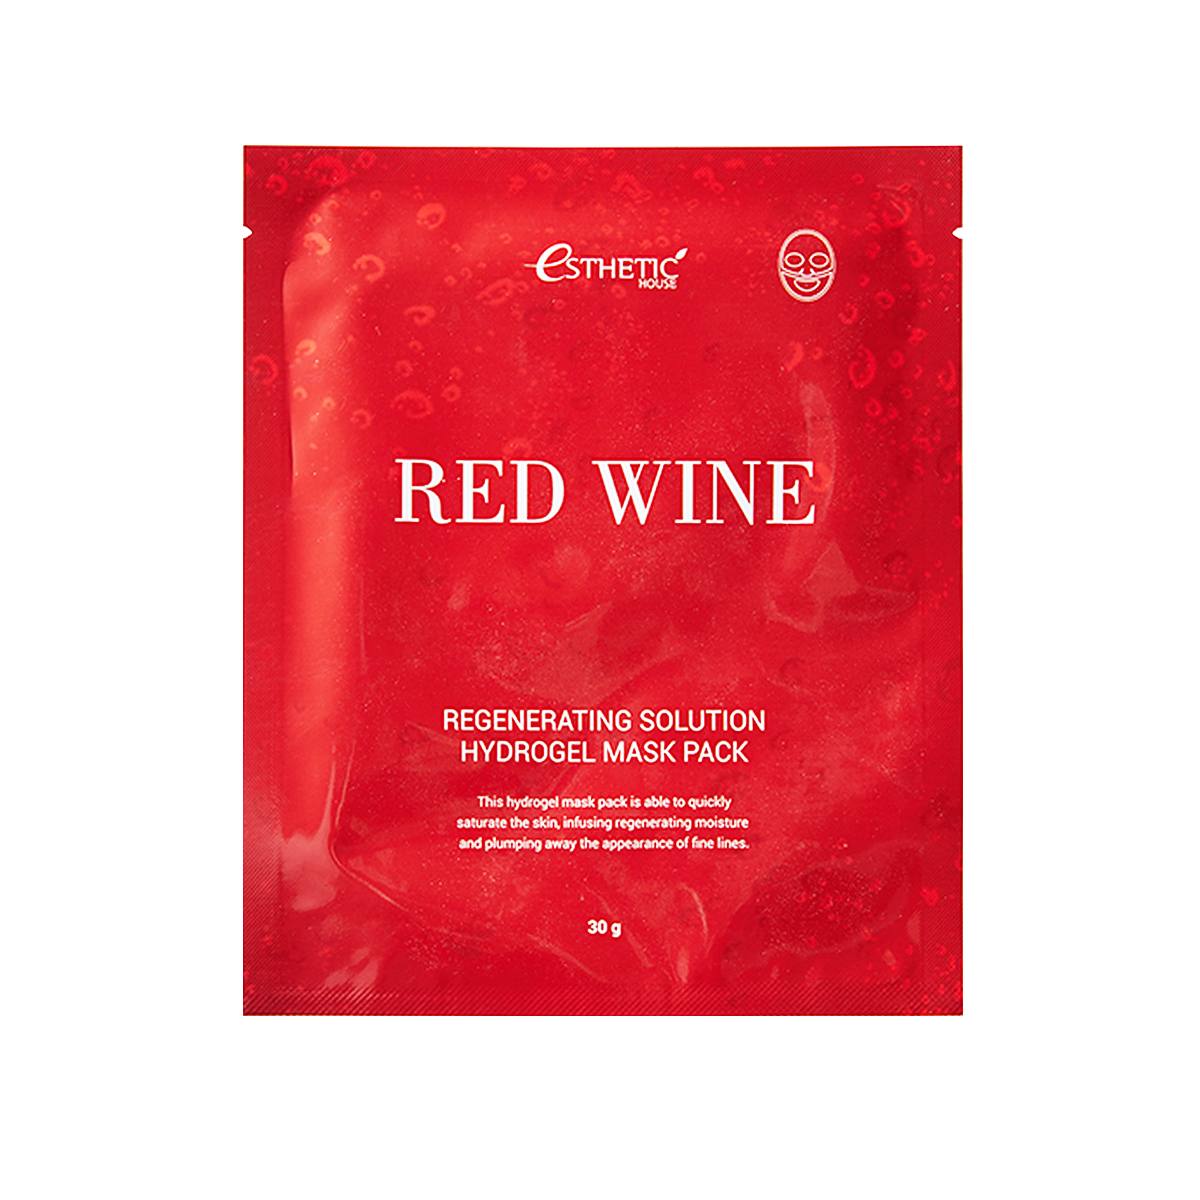 Гидрогелевые Гидрогел. маска д/лица RED WINE REGENERATING SOLUTION HYDROGEL MASK PACK, 1шт import_files_34_34fde760a96f11e981003408042974b1_34fde761a96f11e981003408042974b1.png